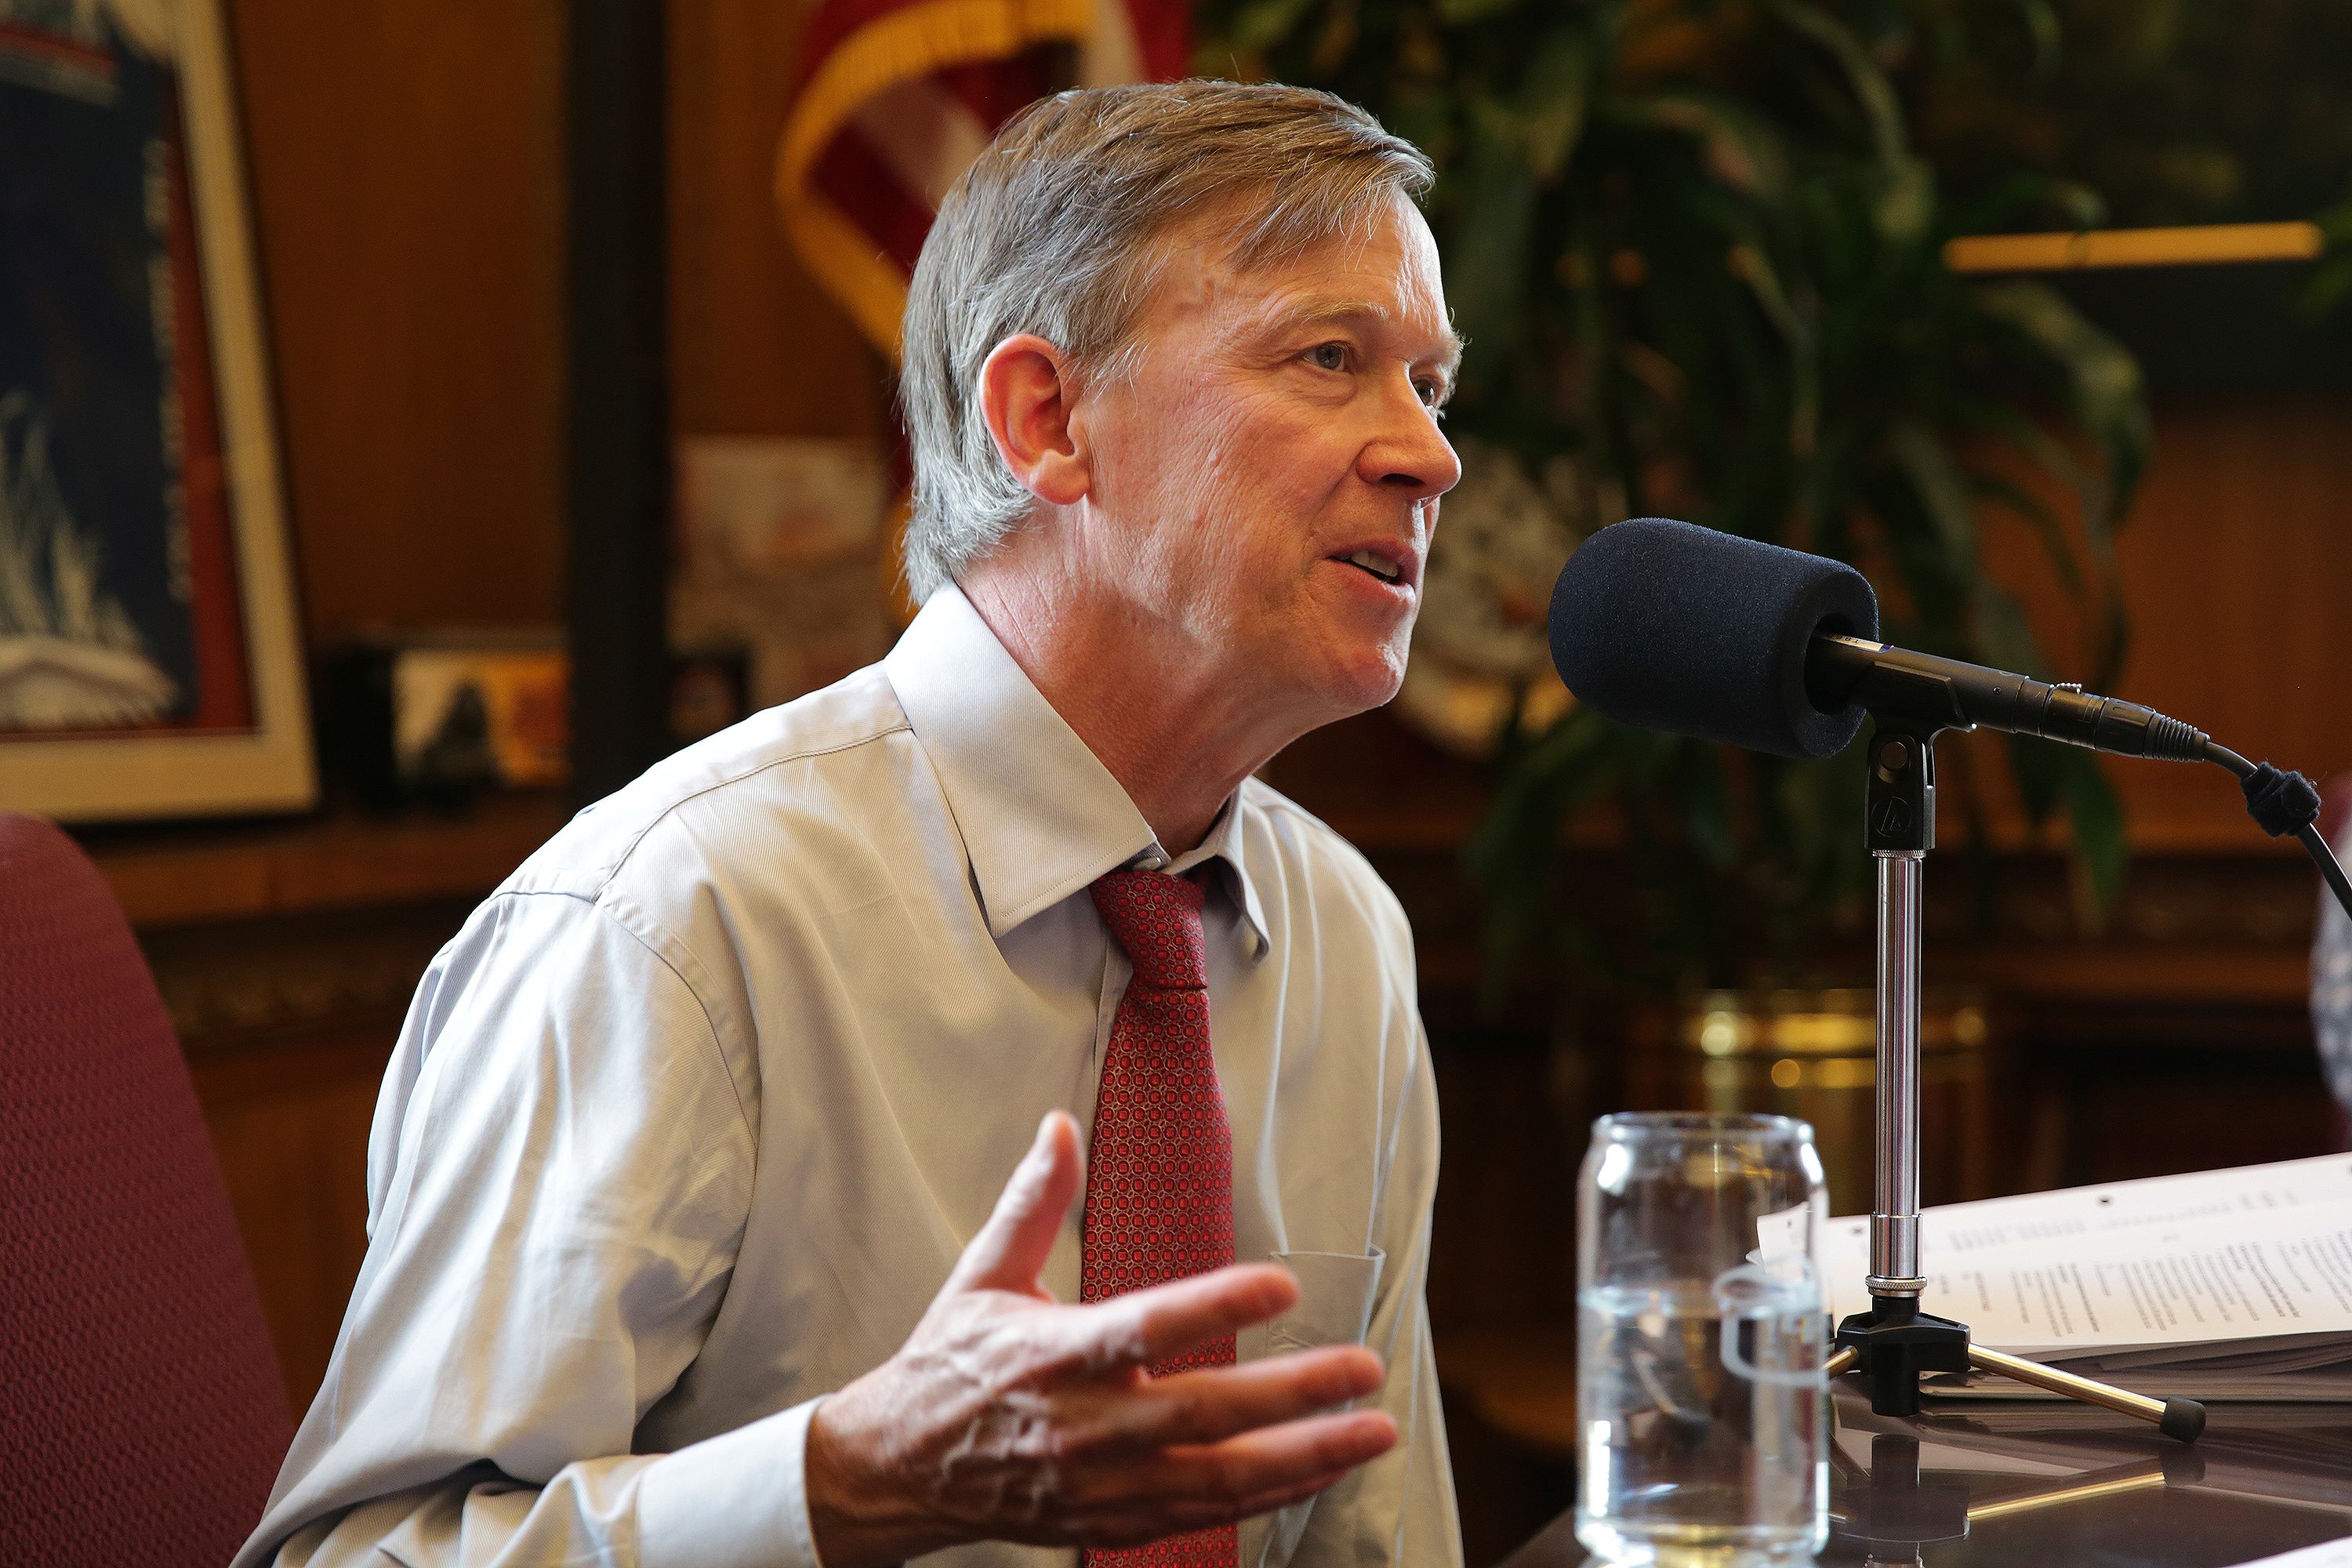 Photo: Hickenlooper On CM Jul 20 2015 Looking Right (HV)